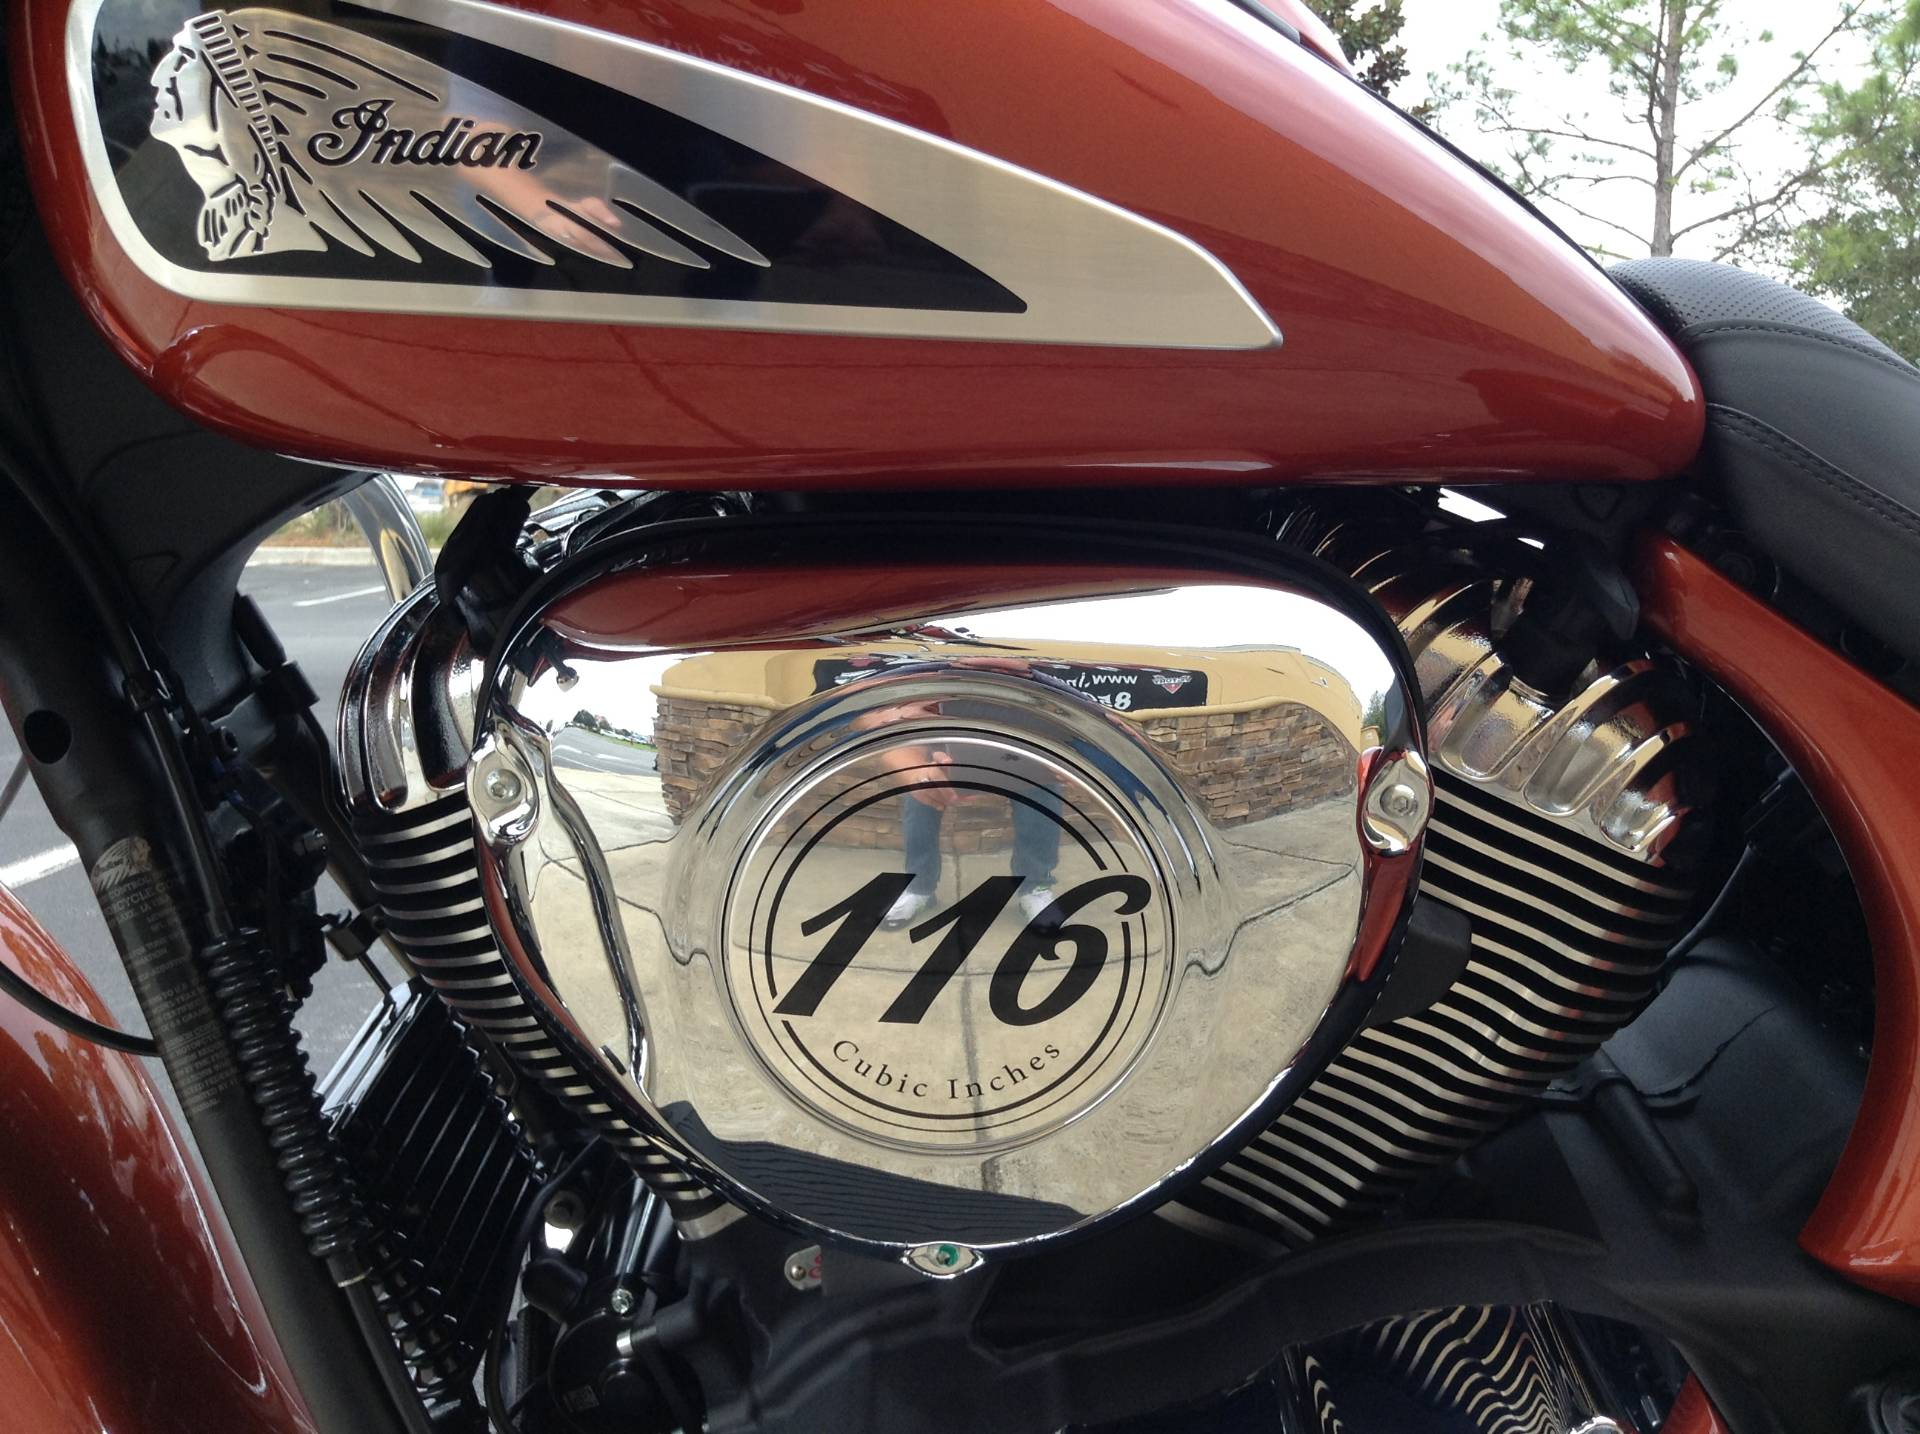 2020 Indian Chieftain® Limited Icon Series in Panama City Beach, Florida - Photo 16